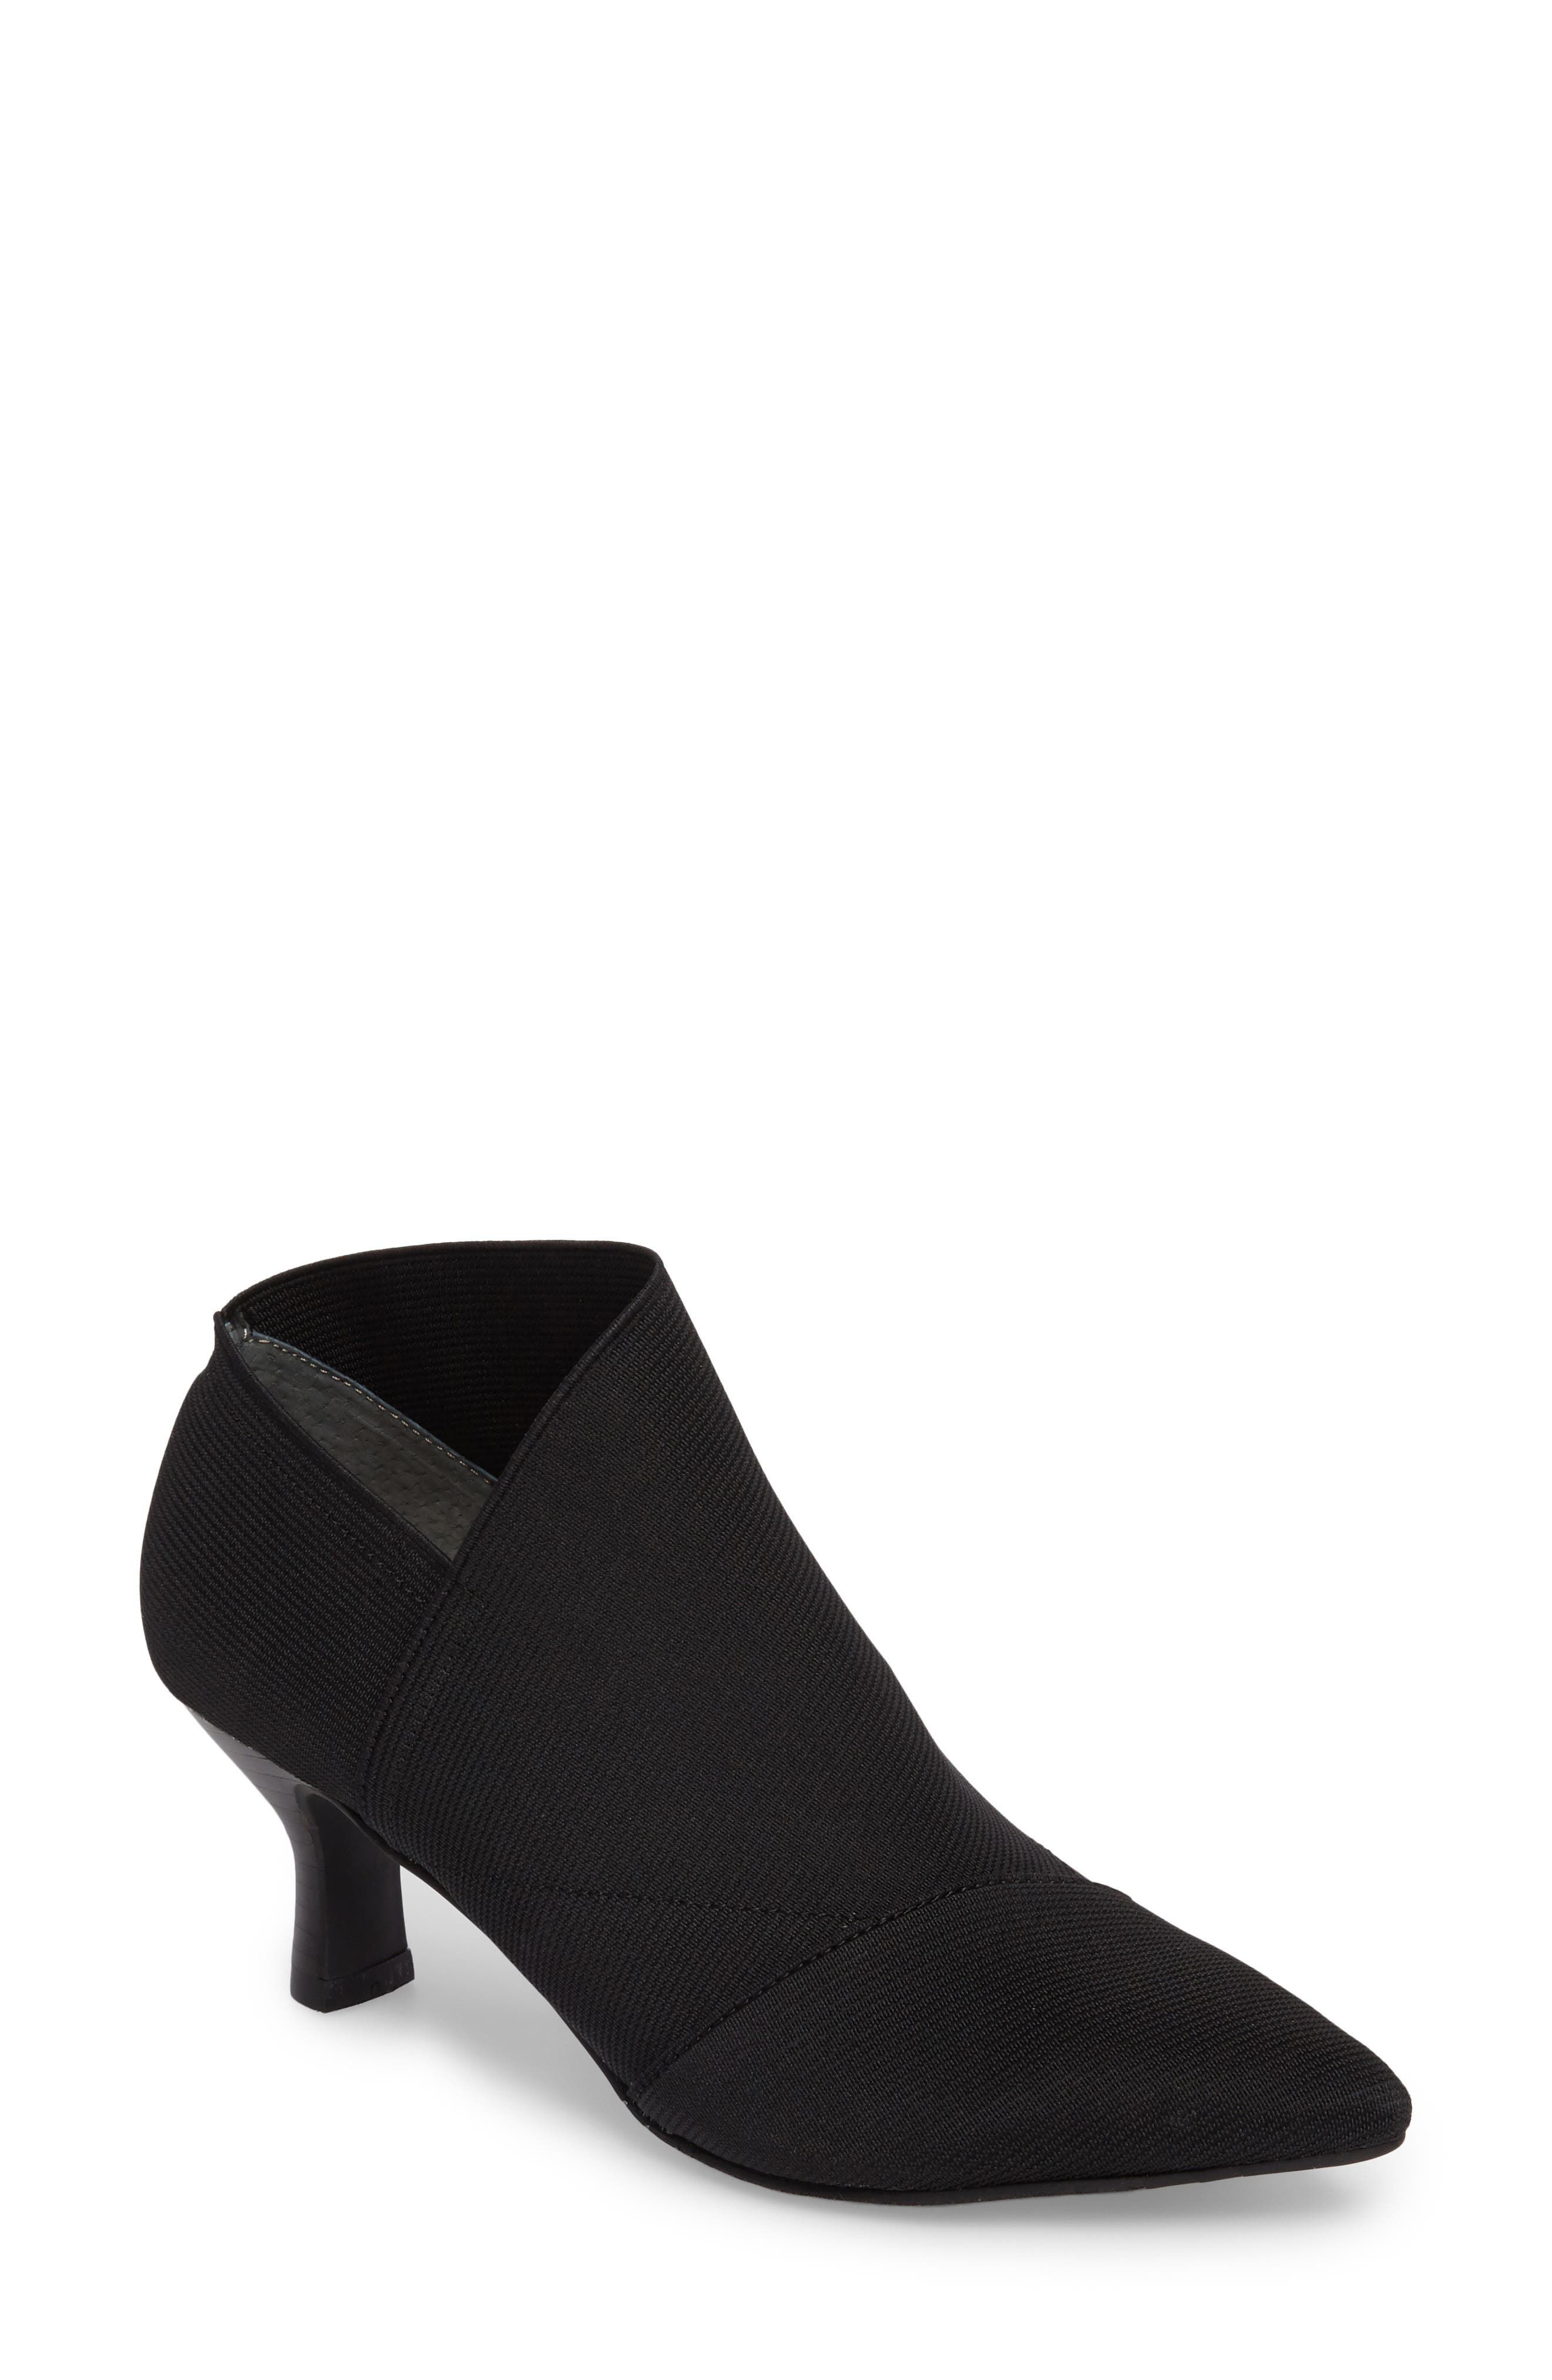 Adrianna Papell Women's Hayes Pointy Toe Bootie v7Q2qx2